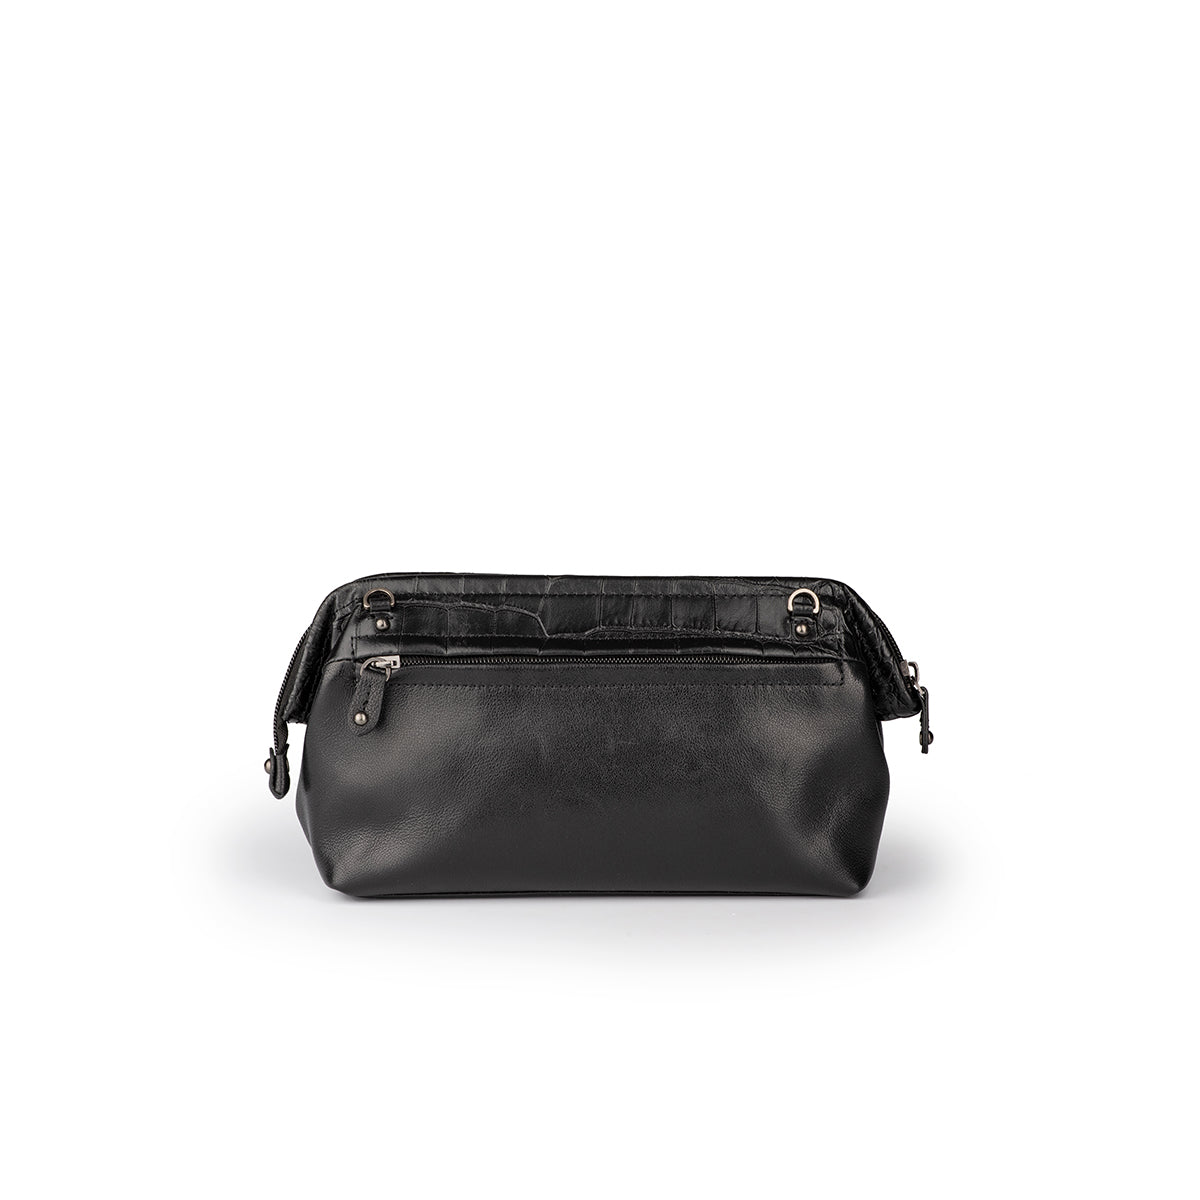 Mock Croc Leather Bag